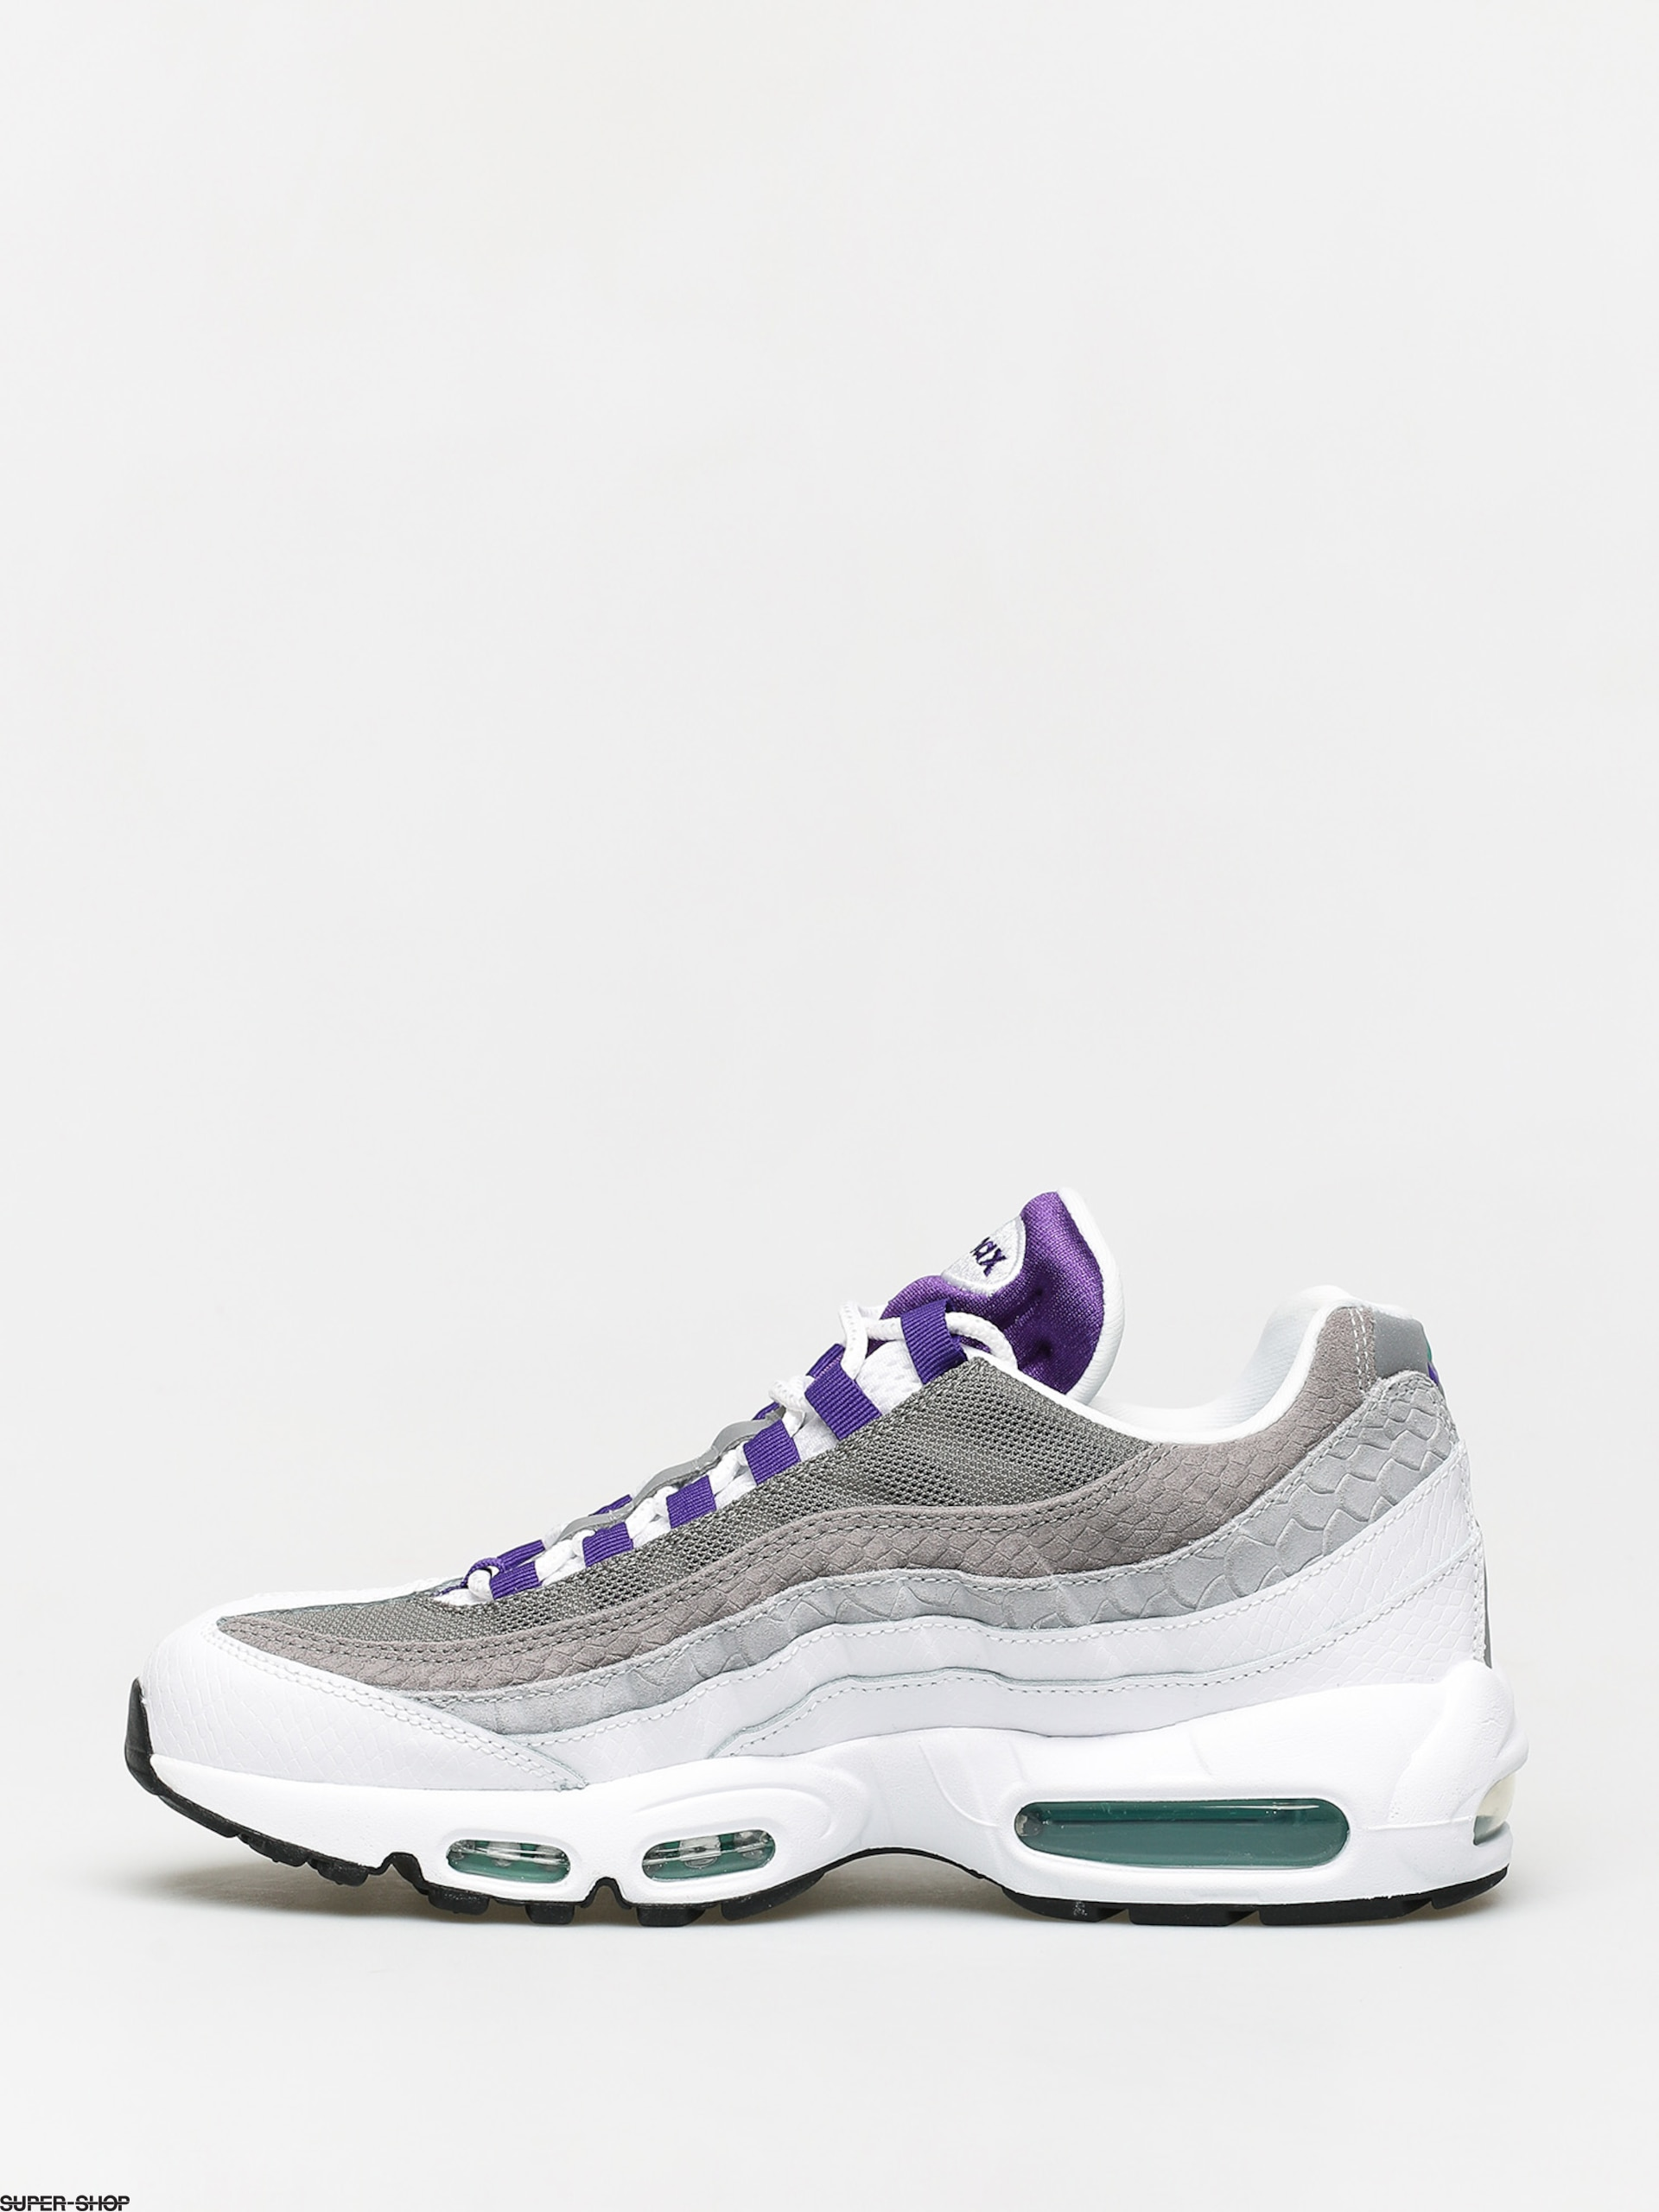 Nike Air Max 95 Lv8 Shoes (whitecourt purple emerald green)